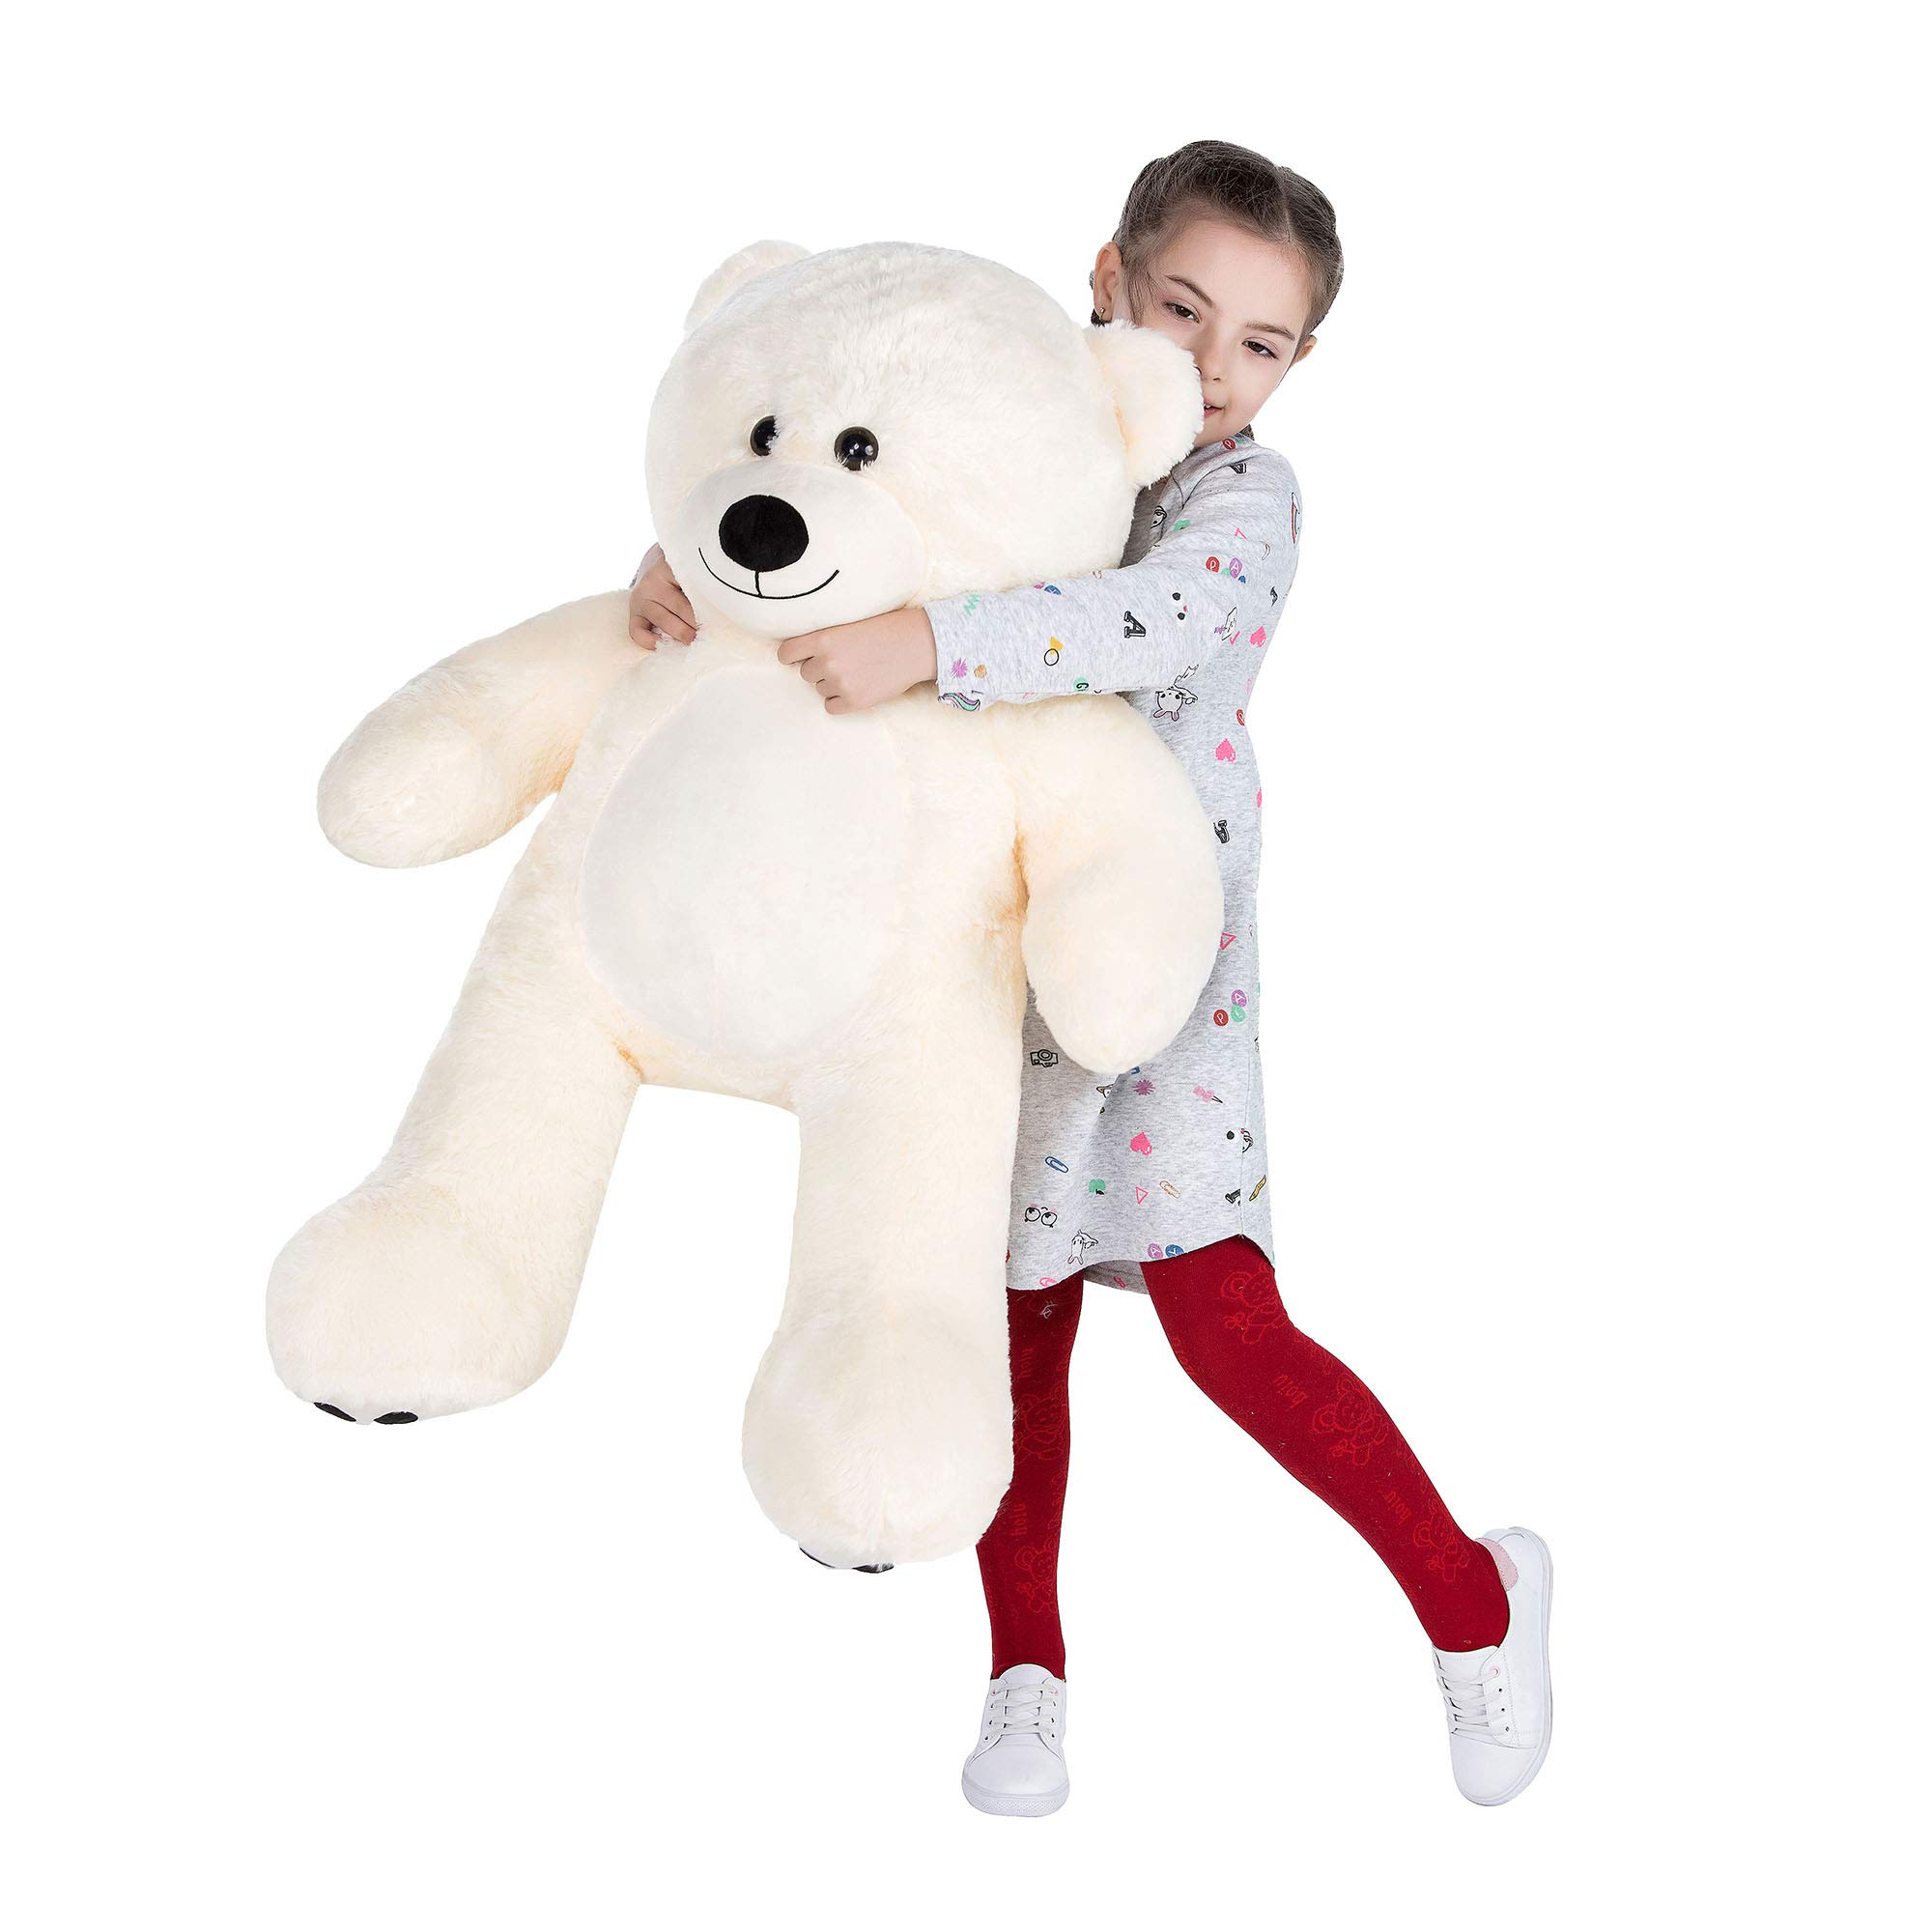 VERCART Giant Huge Cuddly Stuffed Animals Plush Teddy Bear Toy Doll for Birthday Children's Day Valentine's Day (36 inch, White) by VERCART